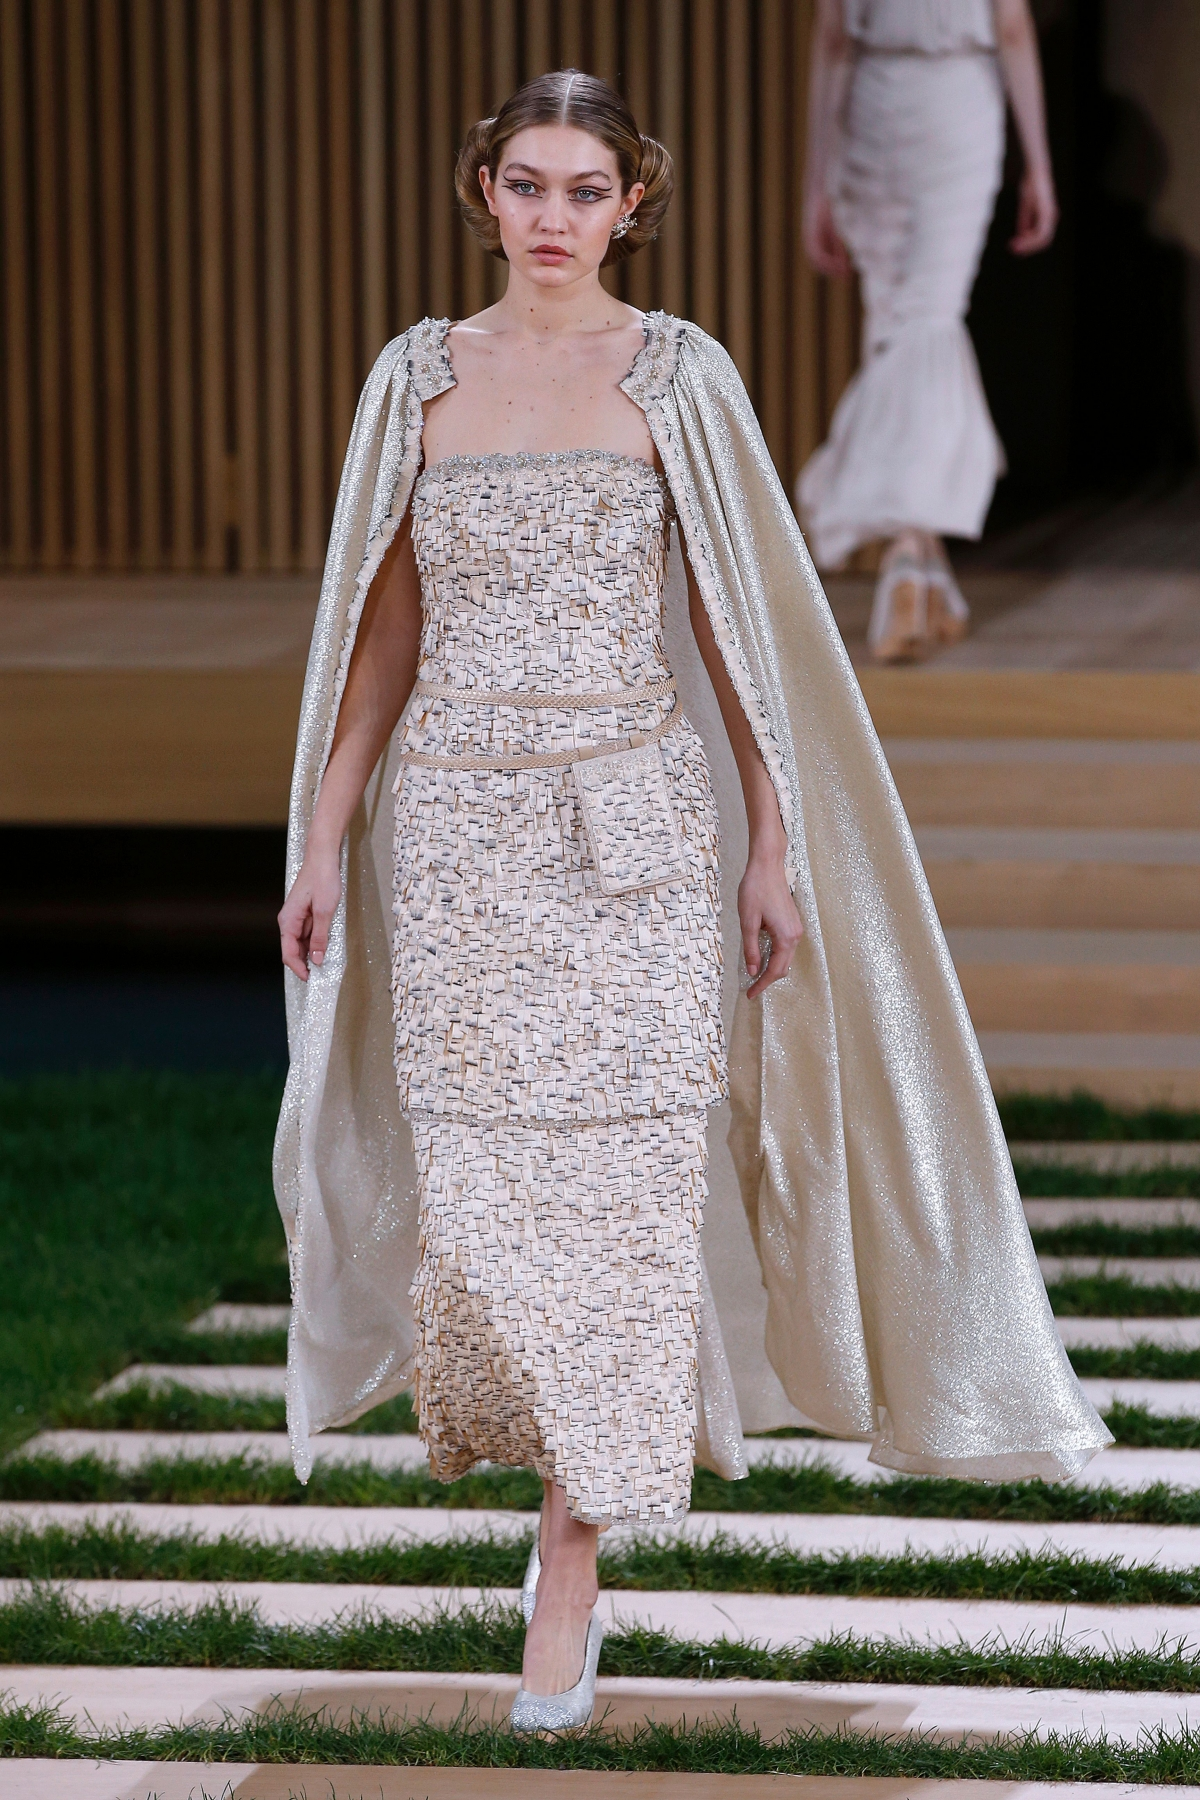 Chanel Haute Couture SS16 show